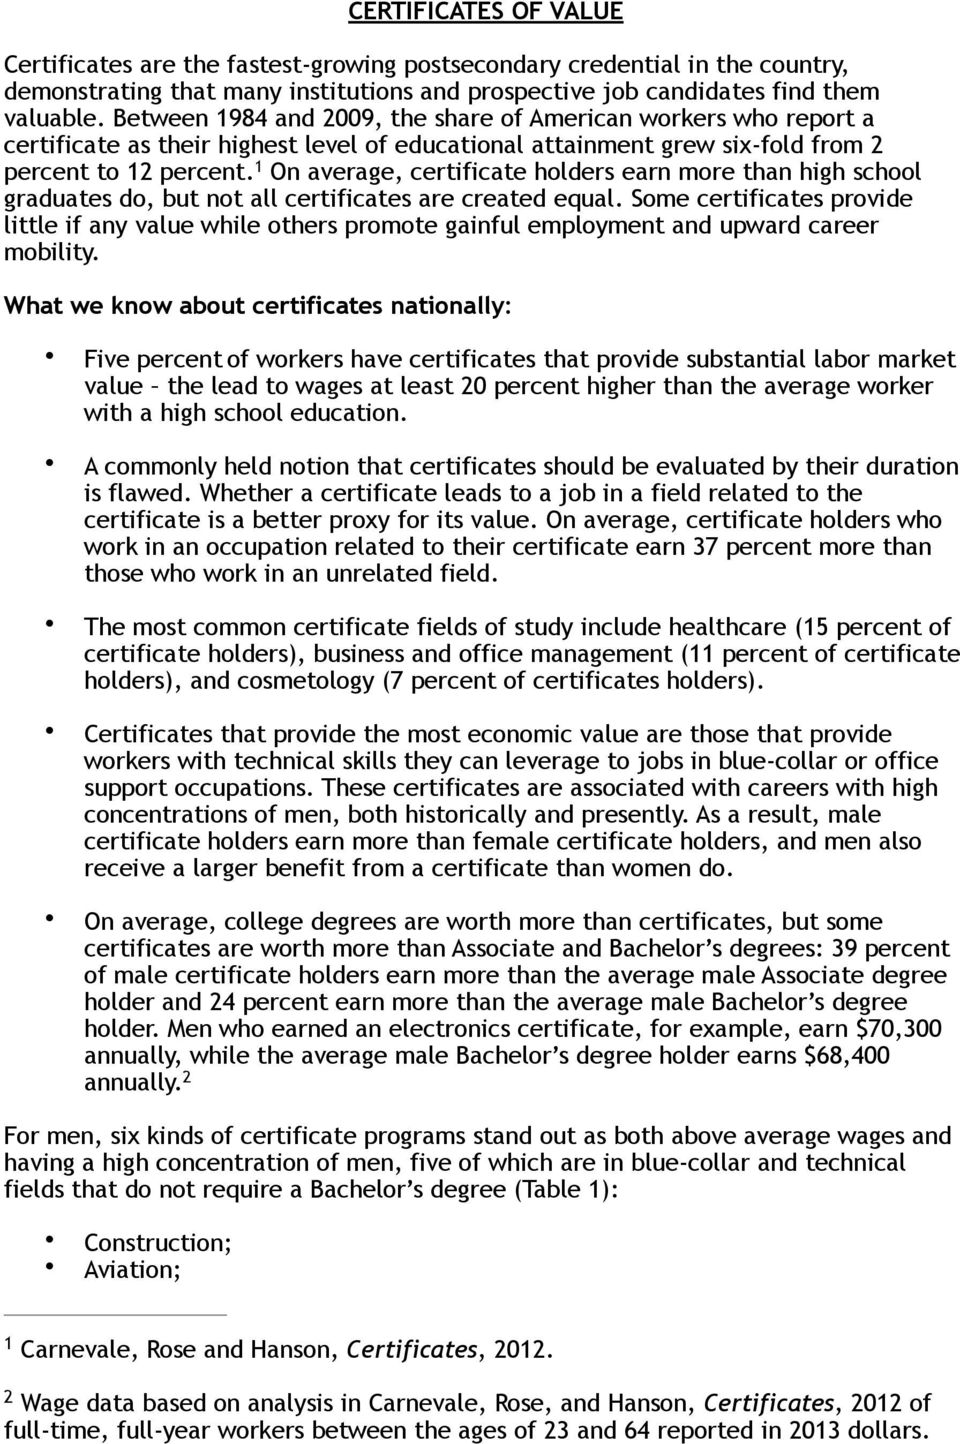 1 On average, certificate holders earn more than high school graduates do, but not all certificates are created equal.